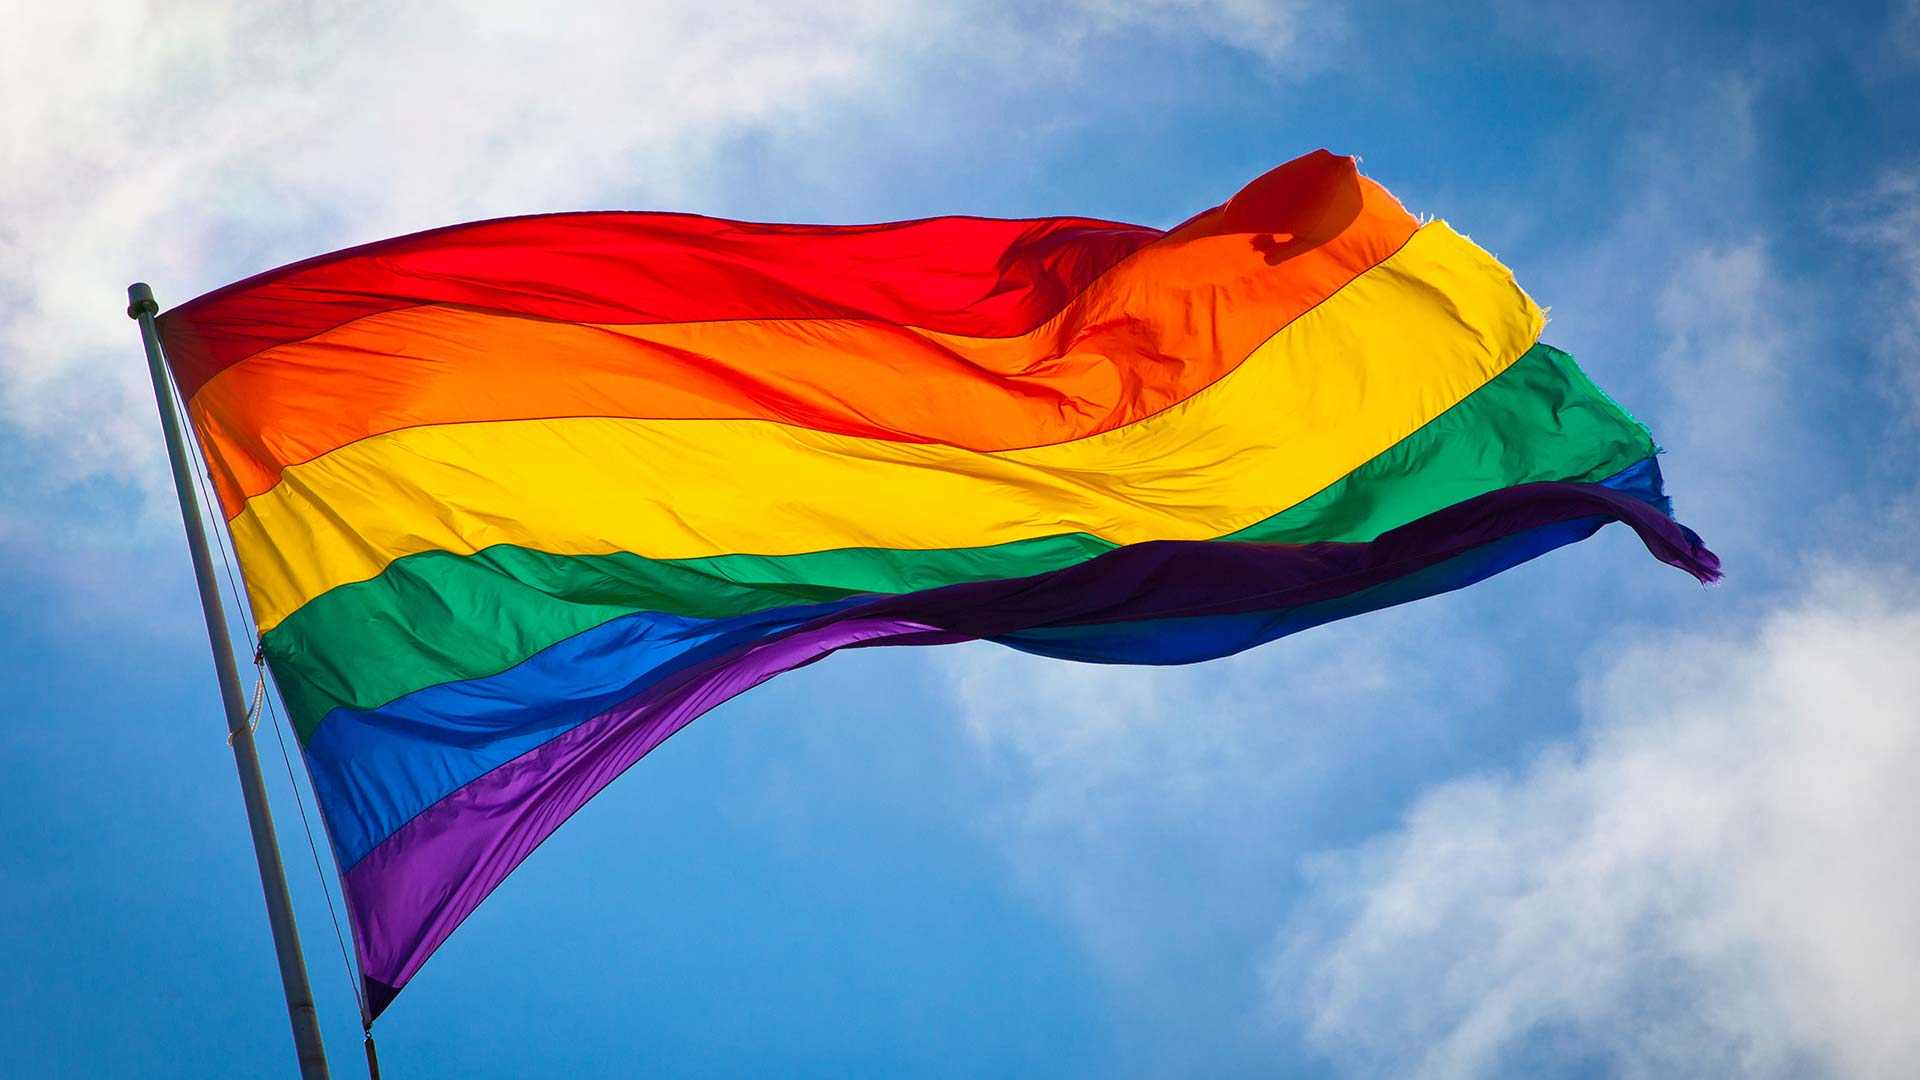 Rainbow flag LGBTQ